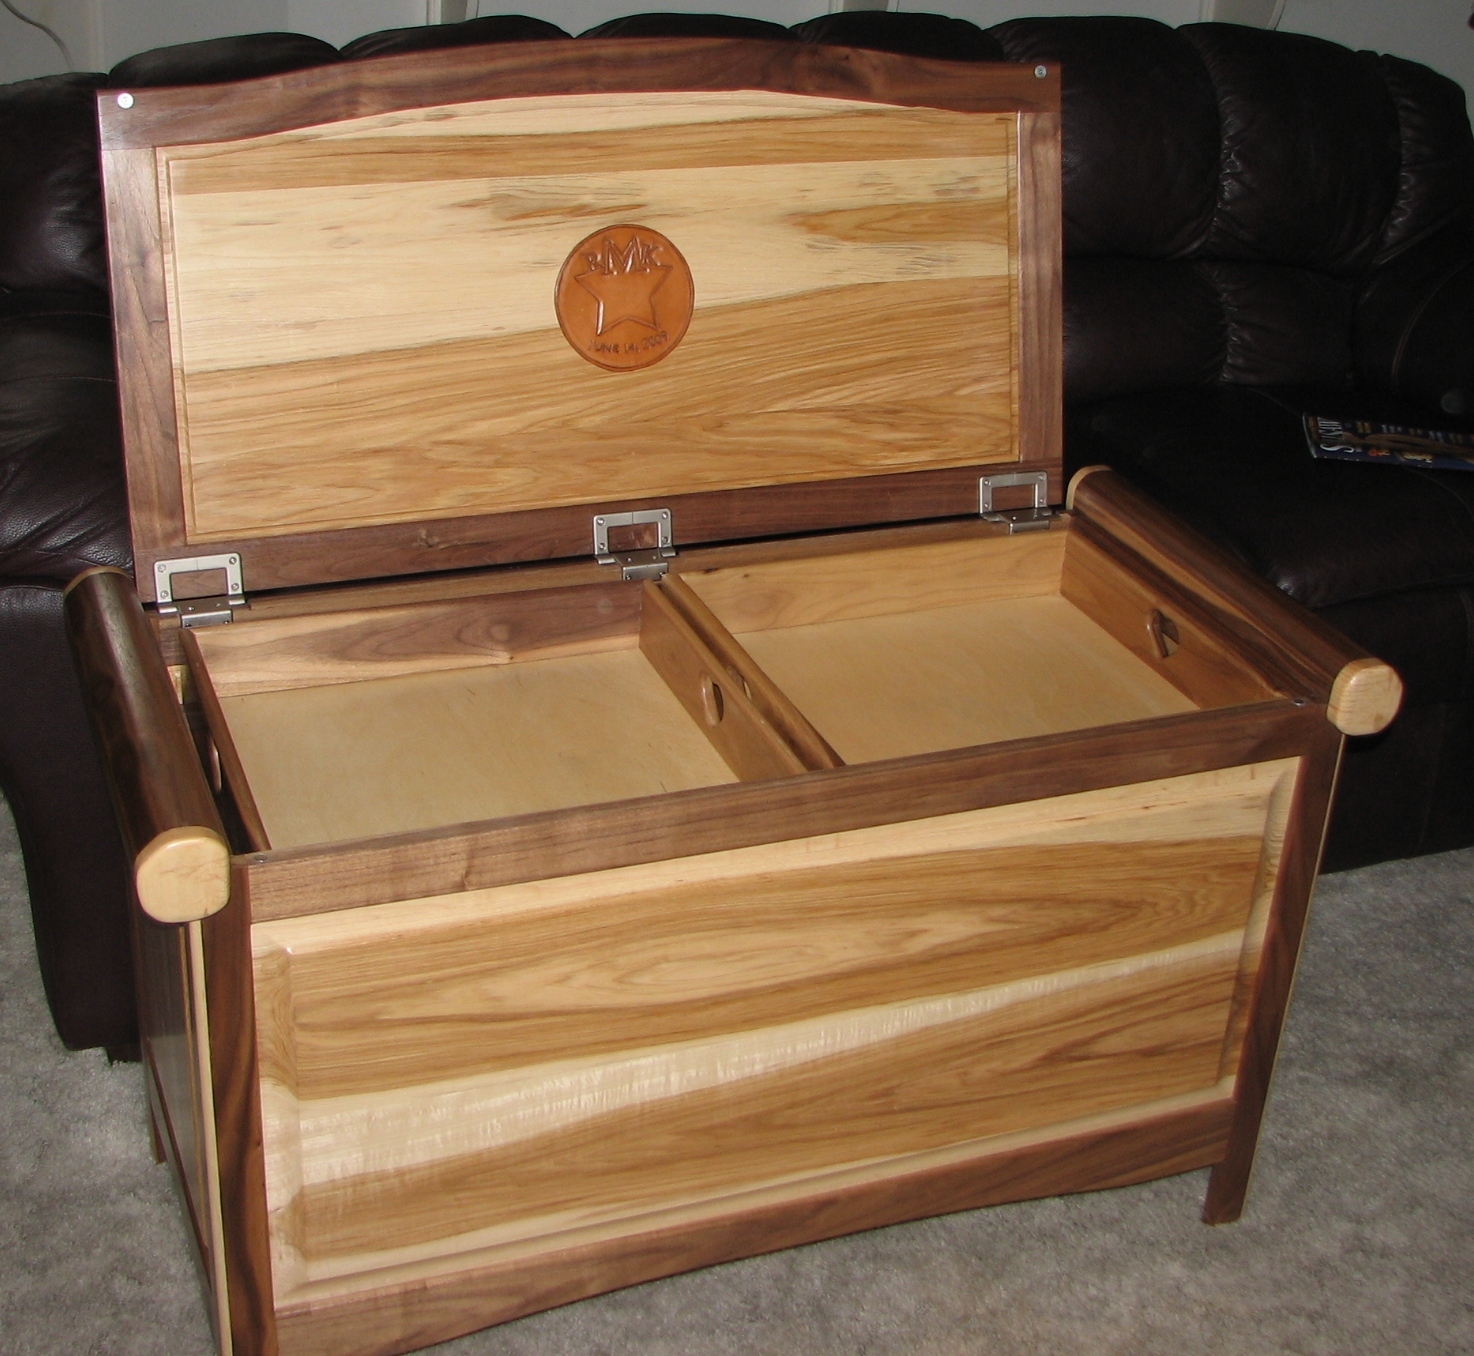 free building plans for toy chest | Woodworking Beginners Guide